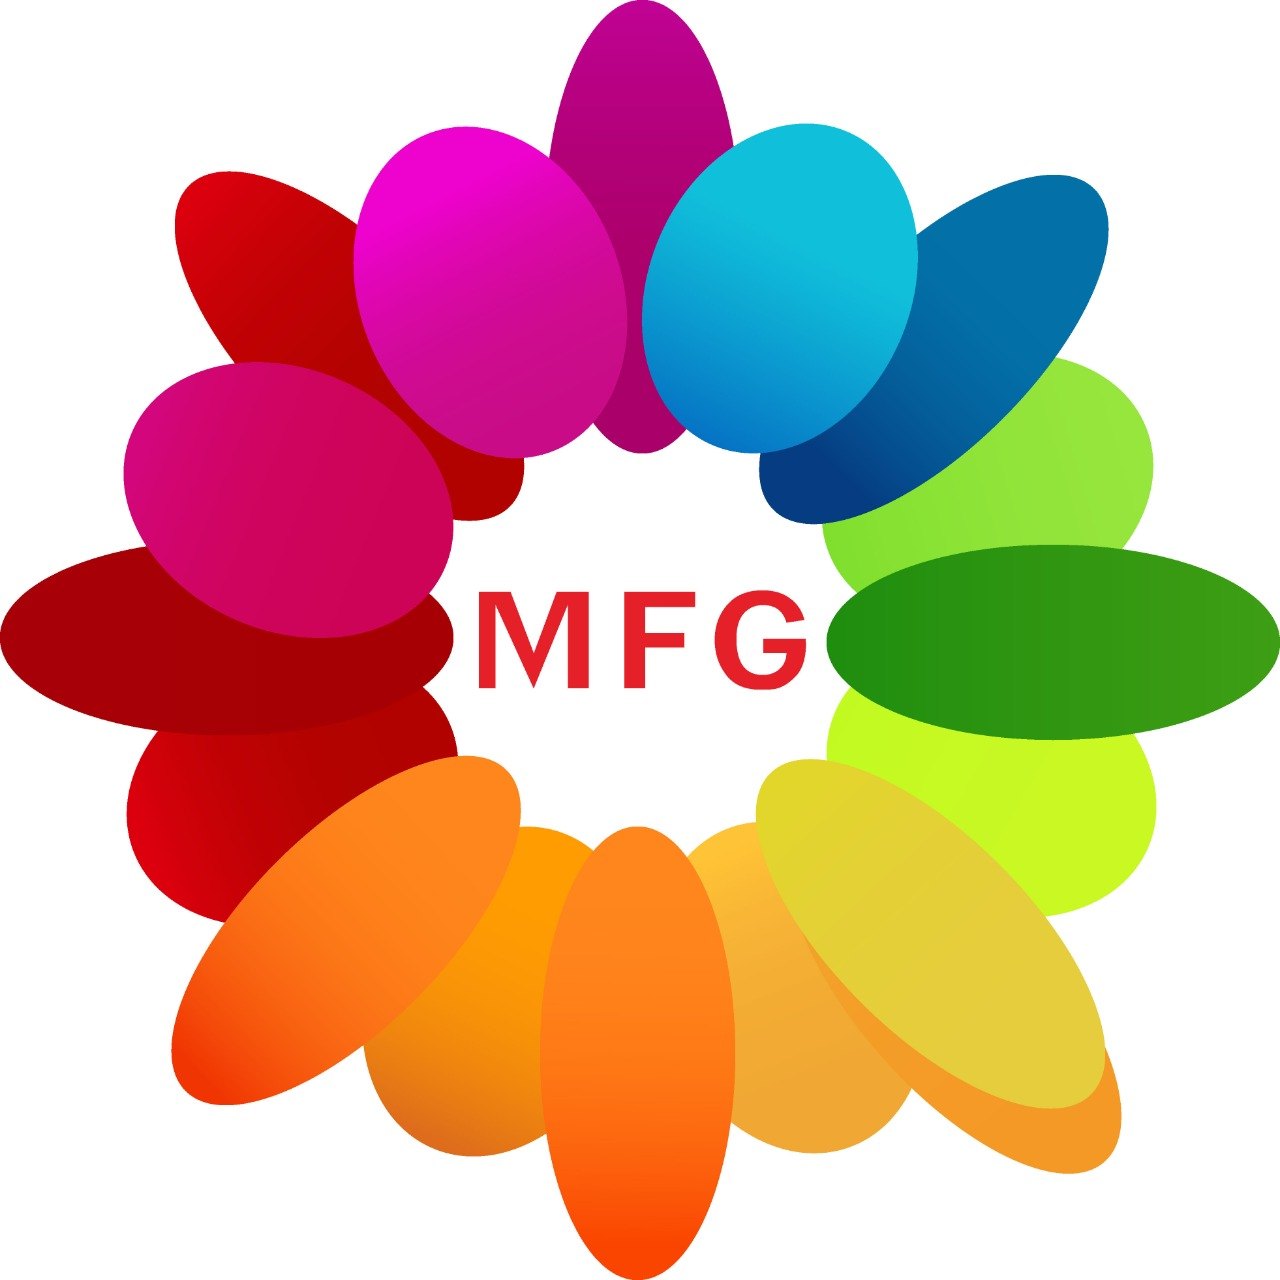 Bunch Of 20 Pink Roses With Box Of 24 pcs Ferrero Rocher Chocolate